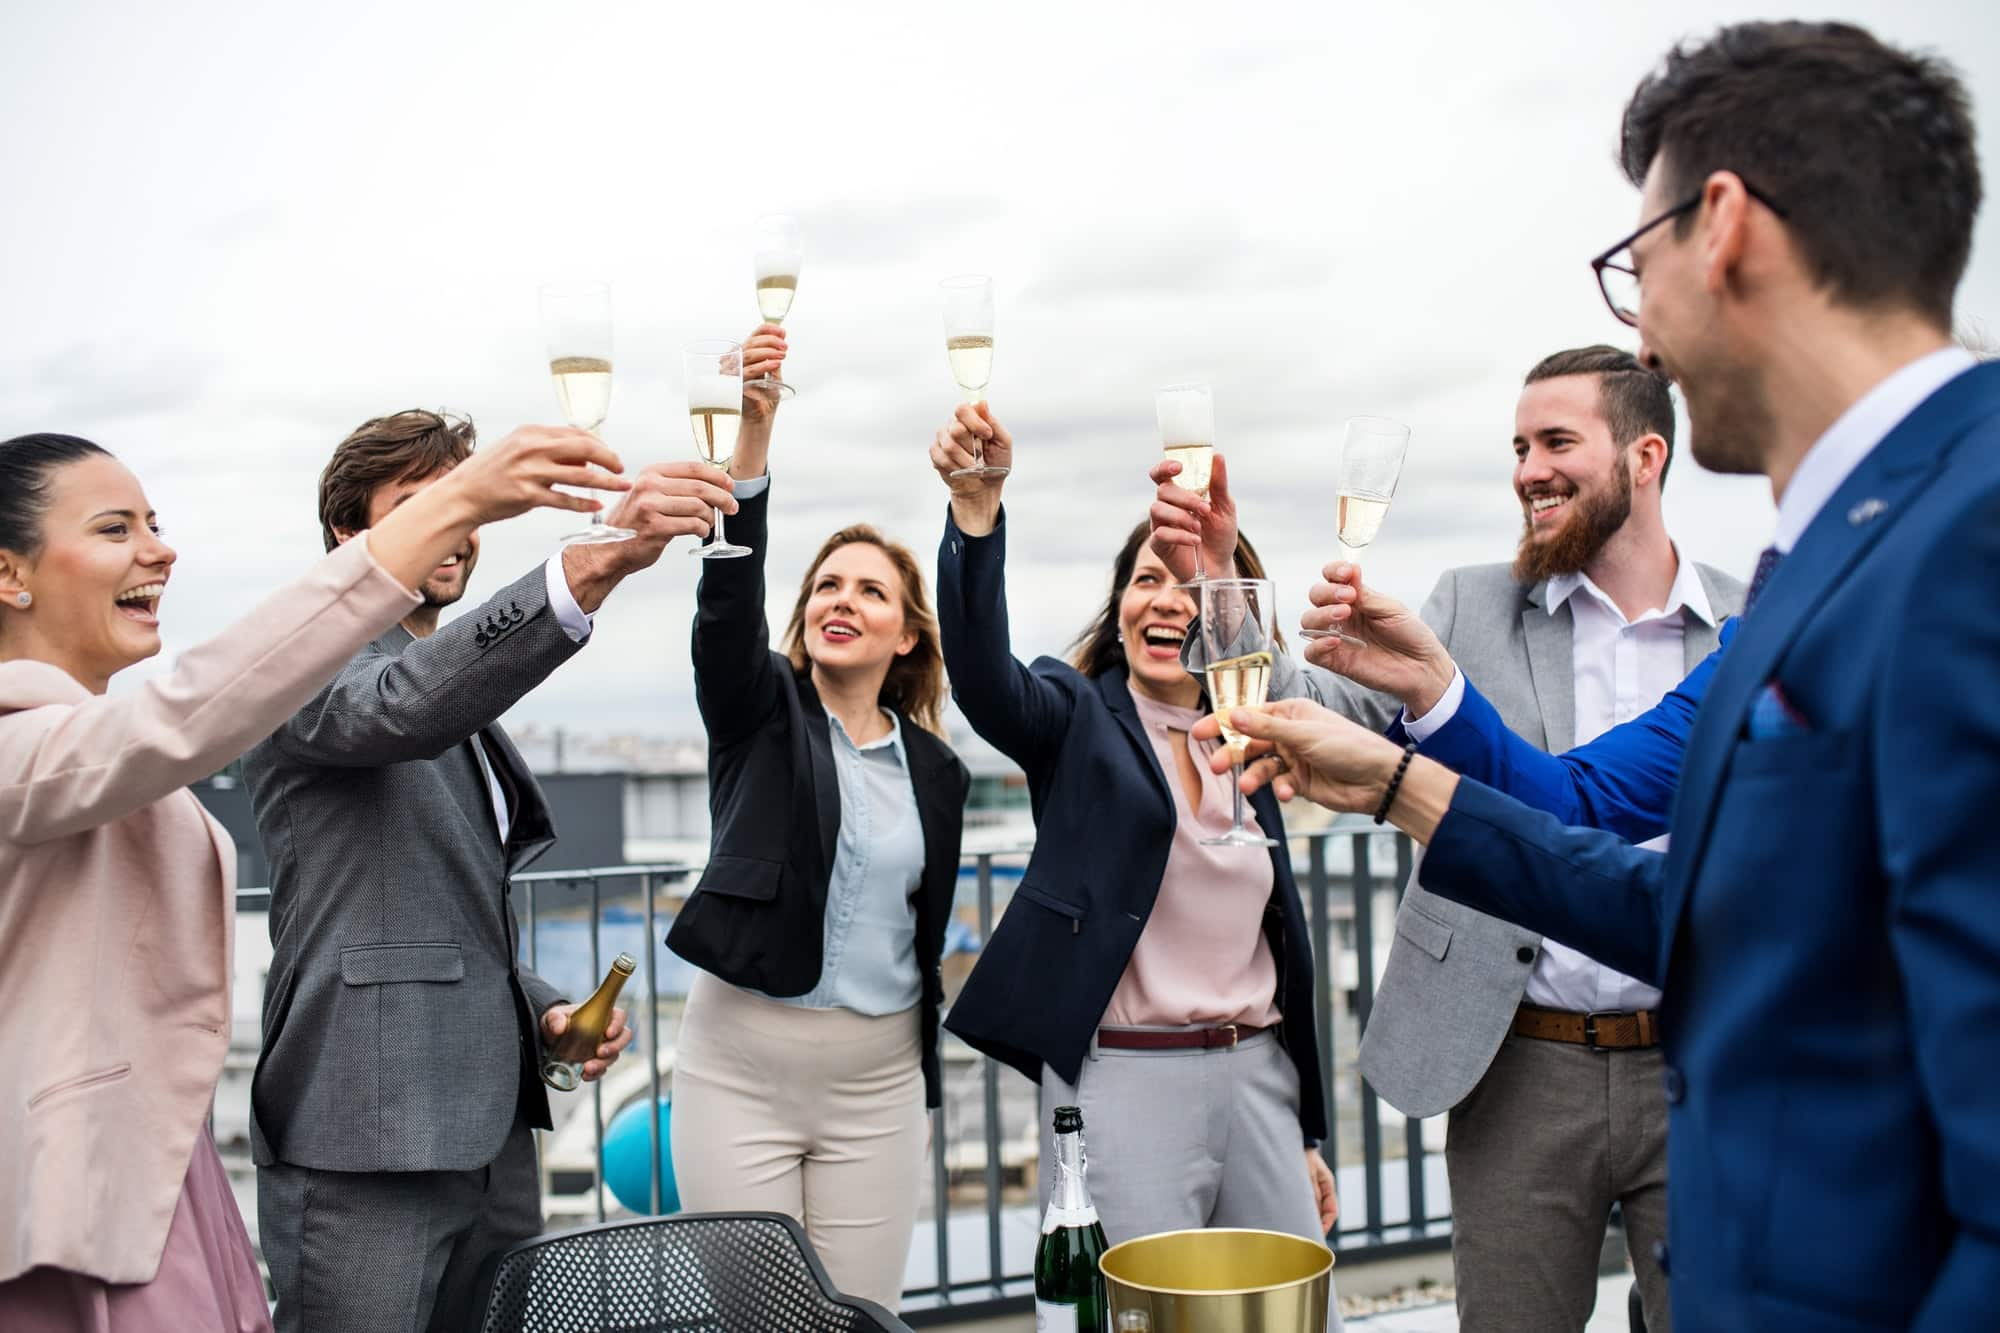 A group of joyful businesspeople having a party outdoors on roof terrace in city